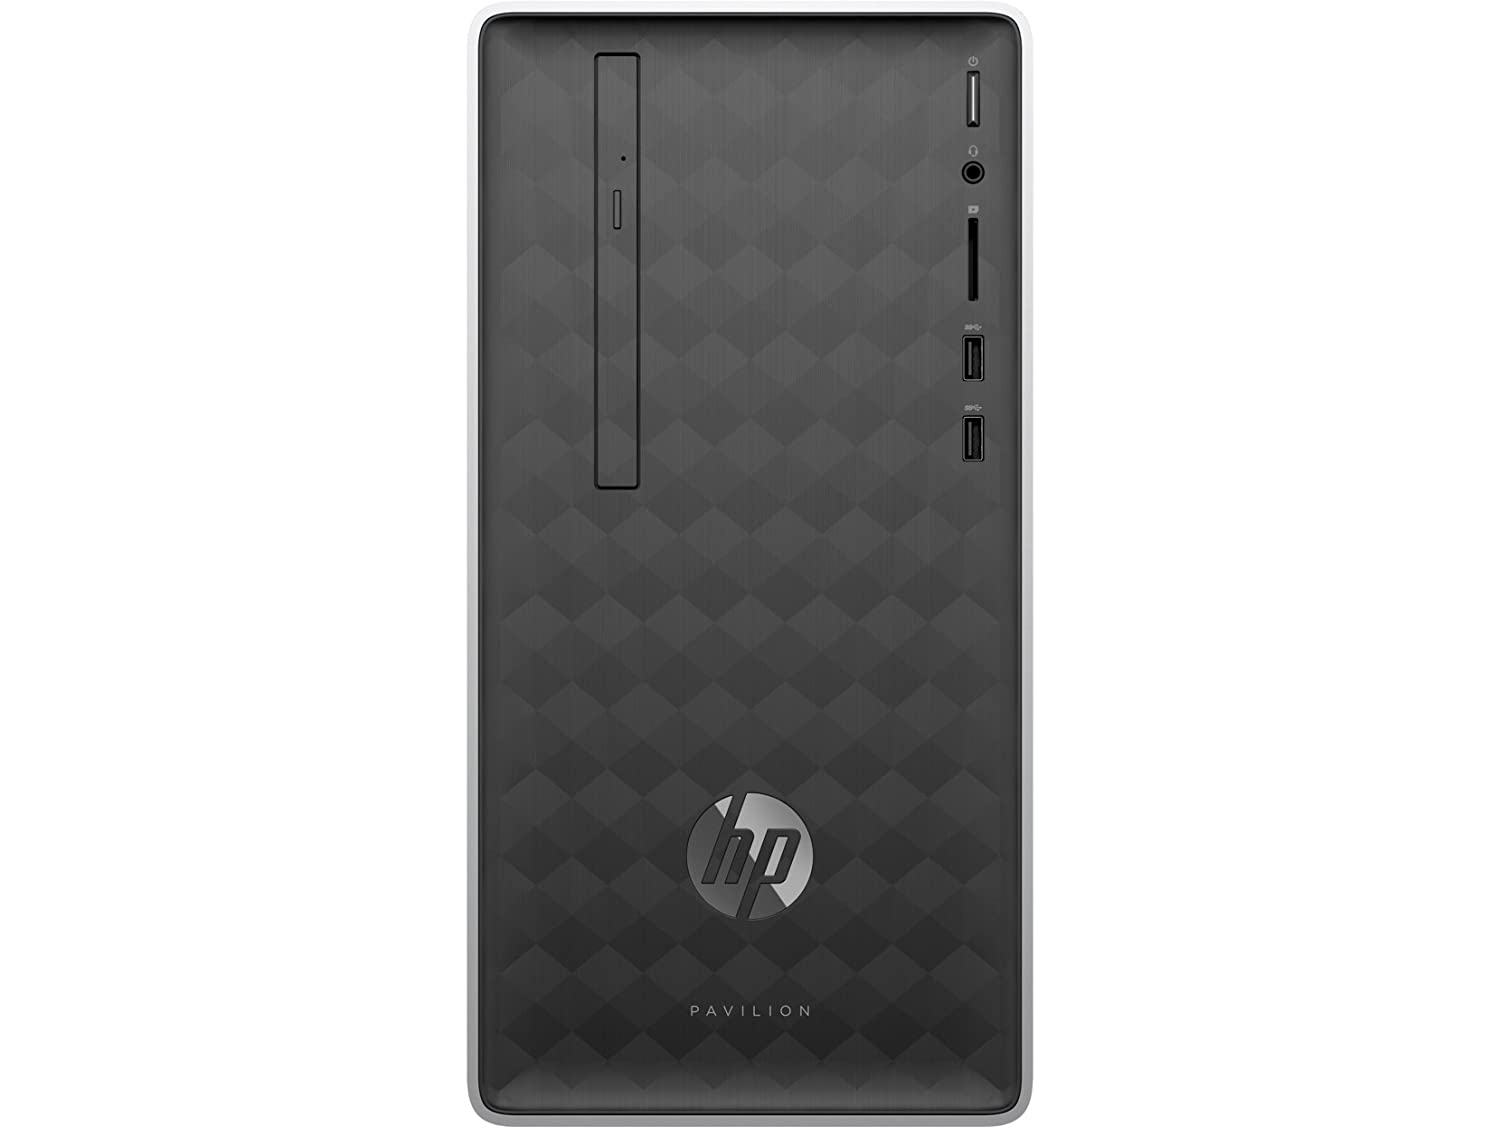 HP Pavilion 590-a0202ns 2,00 GHz Intel® Celeron® J4005 Gris, Plata Mini Tower PC - Ordenador de sobremesa (2,00 GHz, Intel® Celeron®, 4 GB, 1000 GB, DVD Super Multi, FreeDOS)